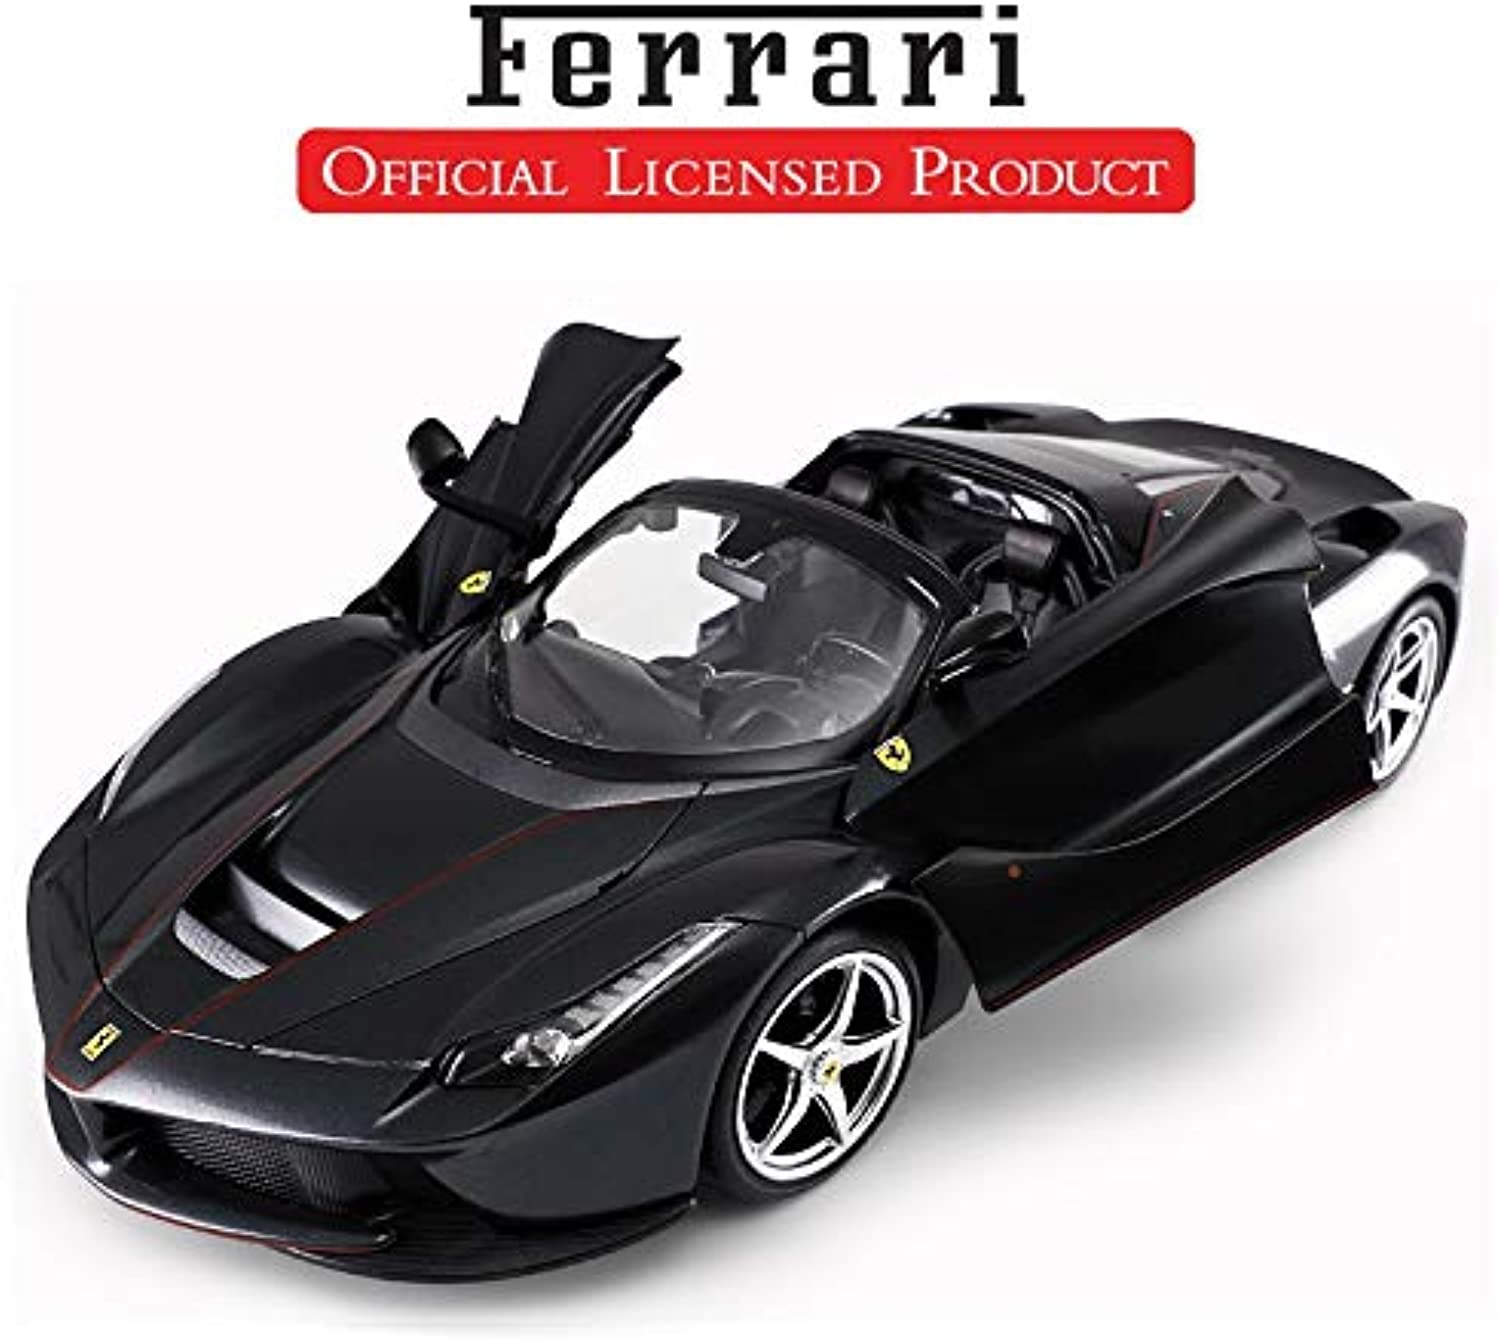 Generic La Ferrari Remote Control Cars Opening Doors, Lights 1 14 Official Licensed 2WD Drifting Aperta Electric Radio Controlled RC Car Black